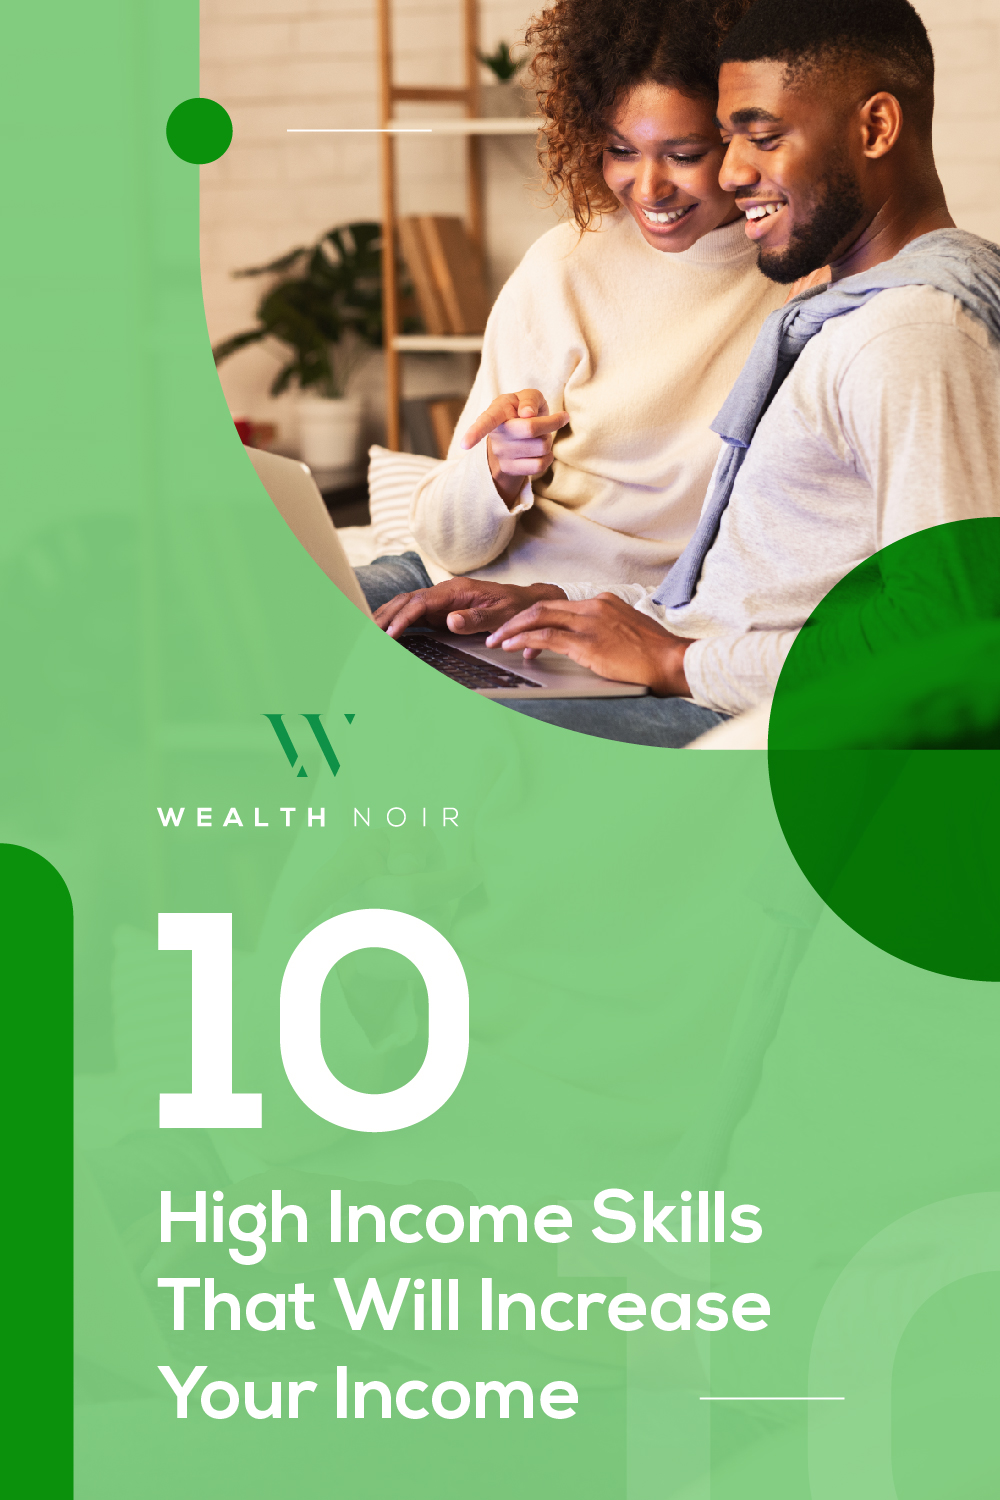 10 High Income Skills to Increase Your Income